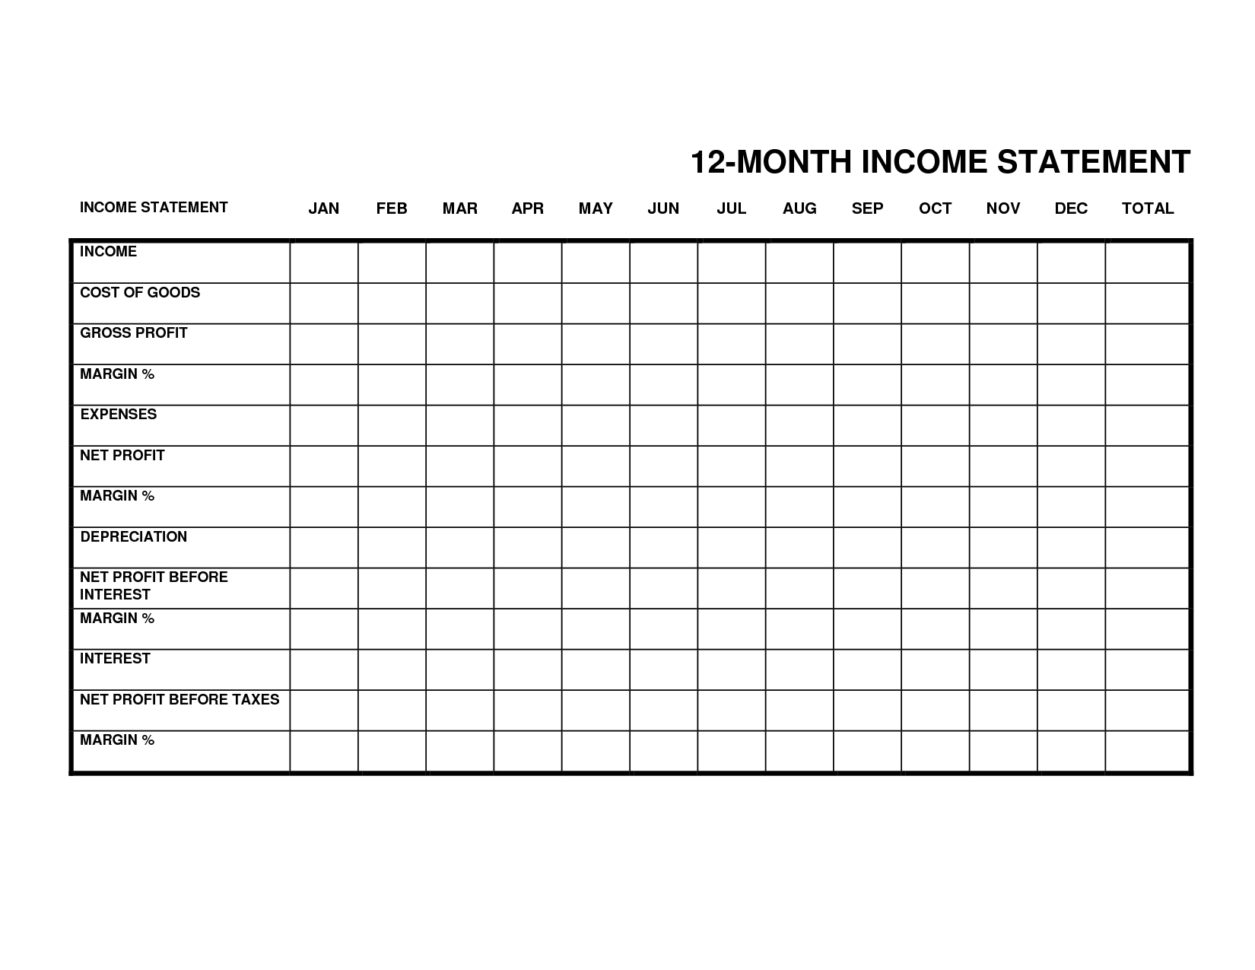 Monthly Income Statement Template Excel   Resourcesaver Intended For Income Statement Template In Excel